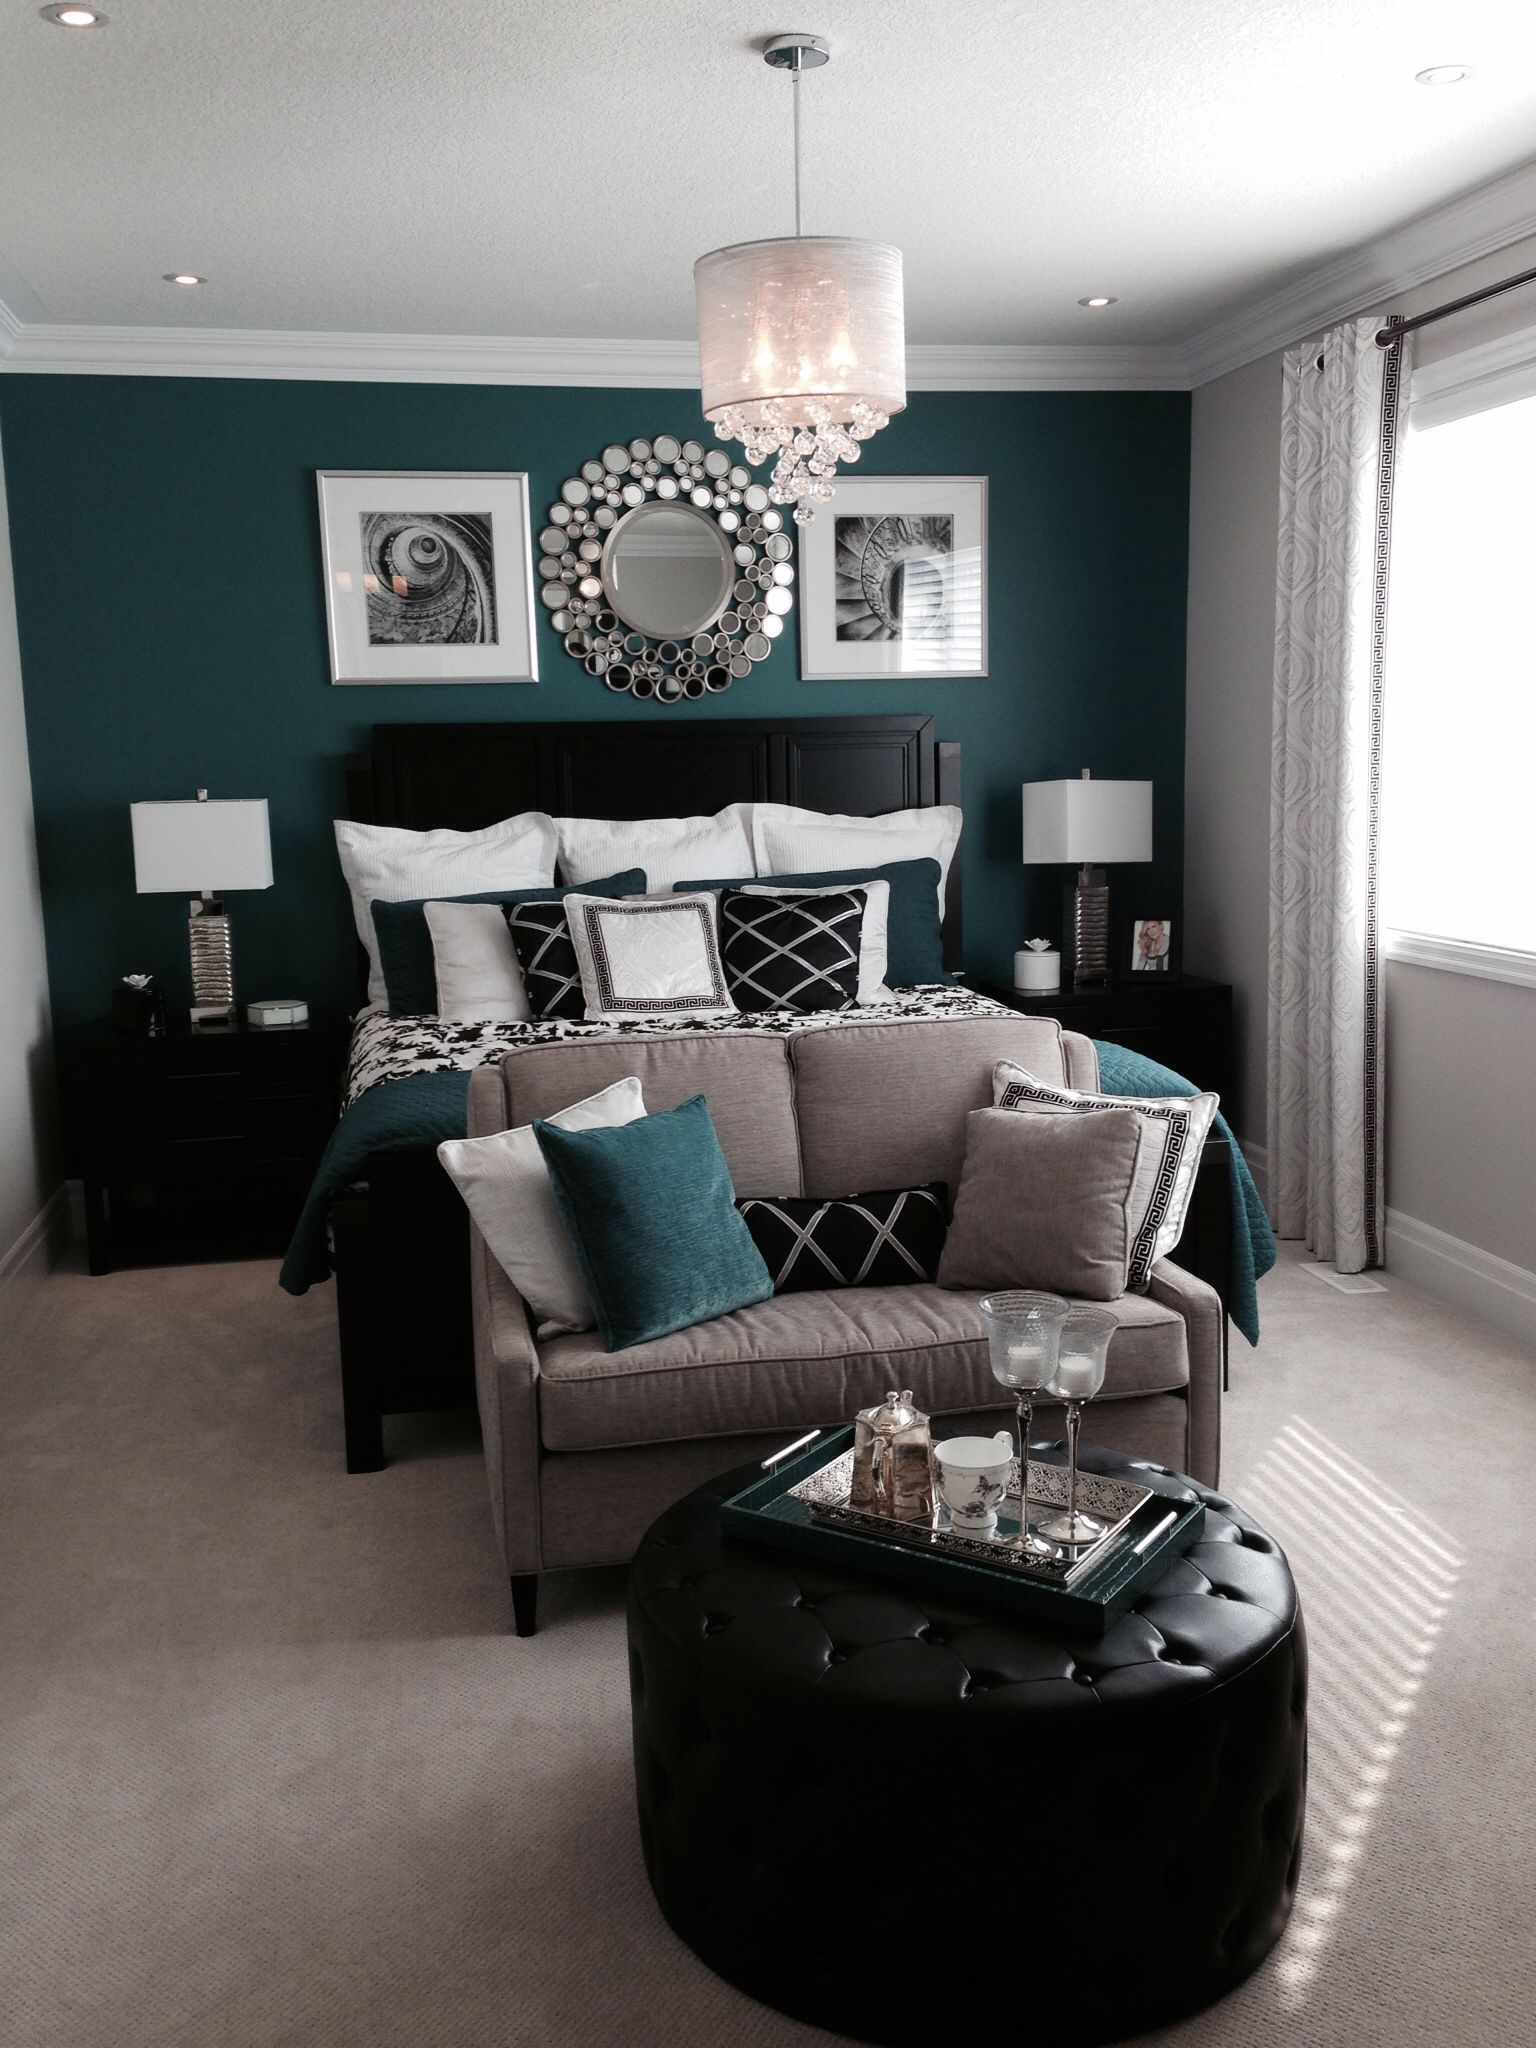 Bedroom With A Beautiful Green Or Teal Feature Accent Wall And Black Accents Glavnye Spalni Dizajn Doma